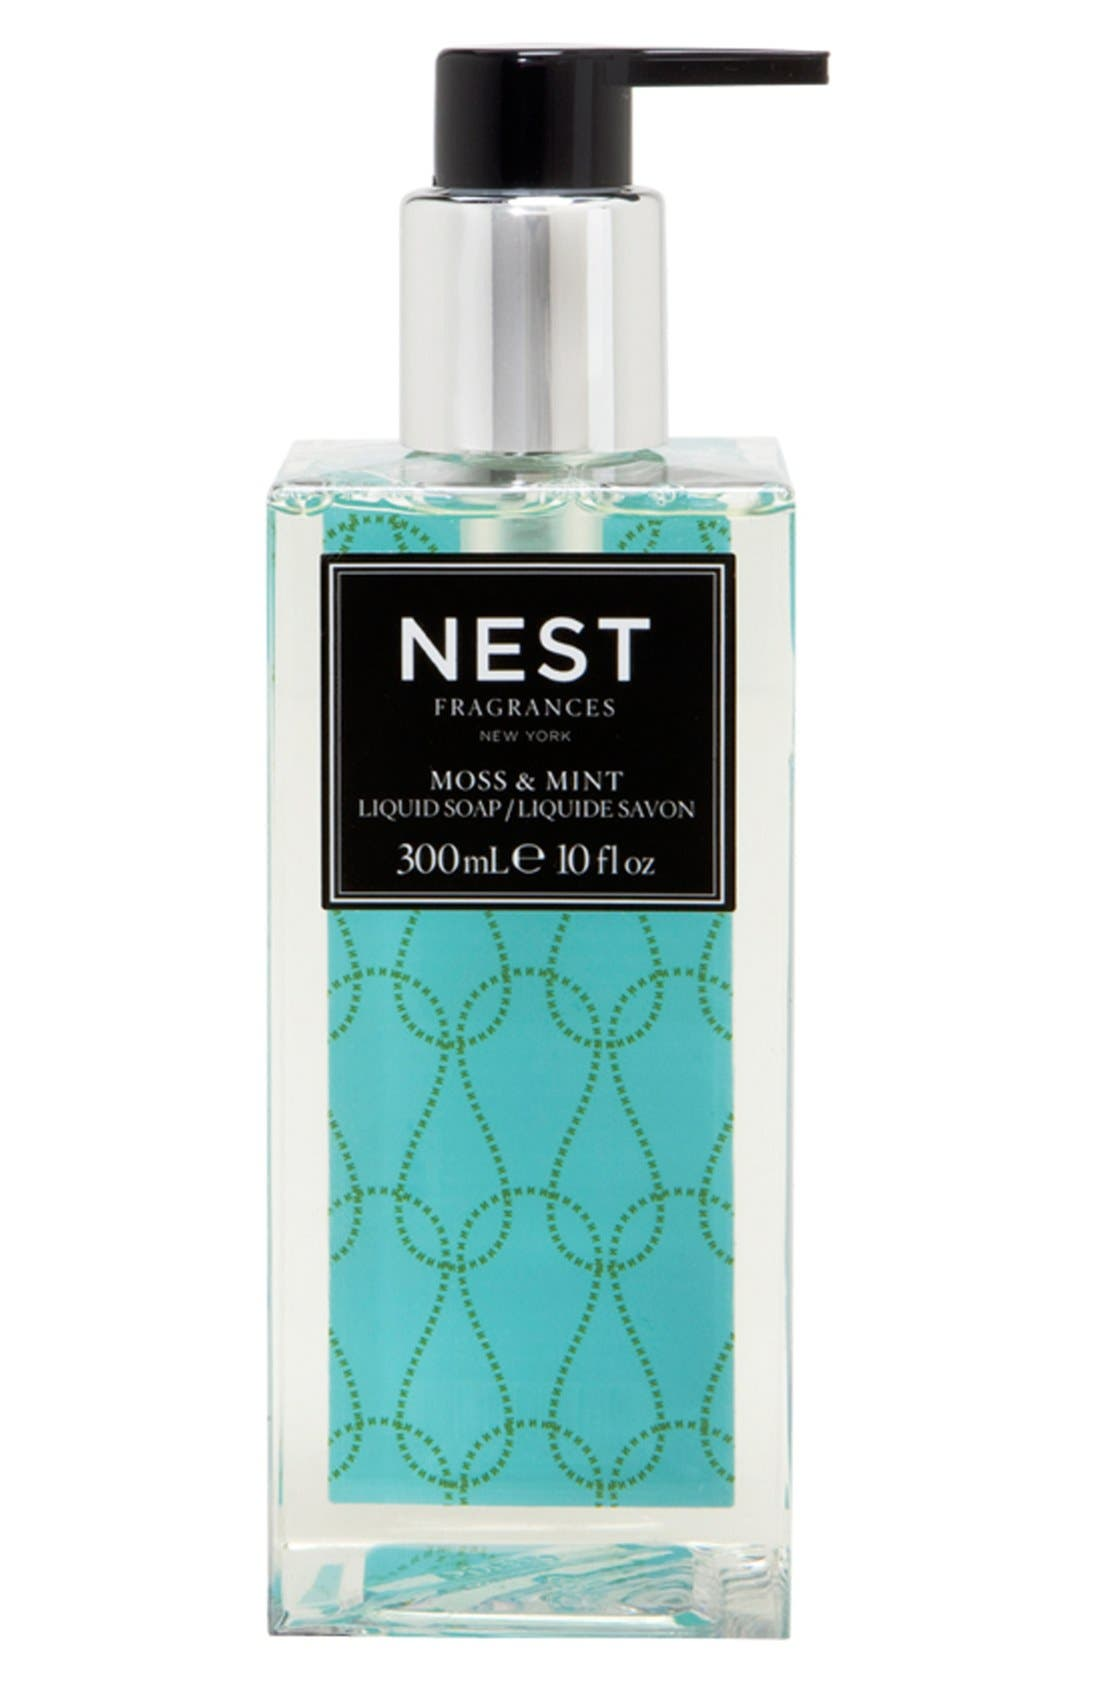 NEST Fragrances 'Moss & Mint' Liquid Soap